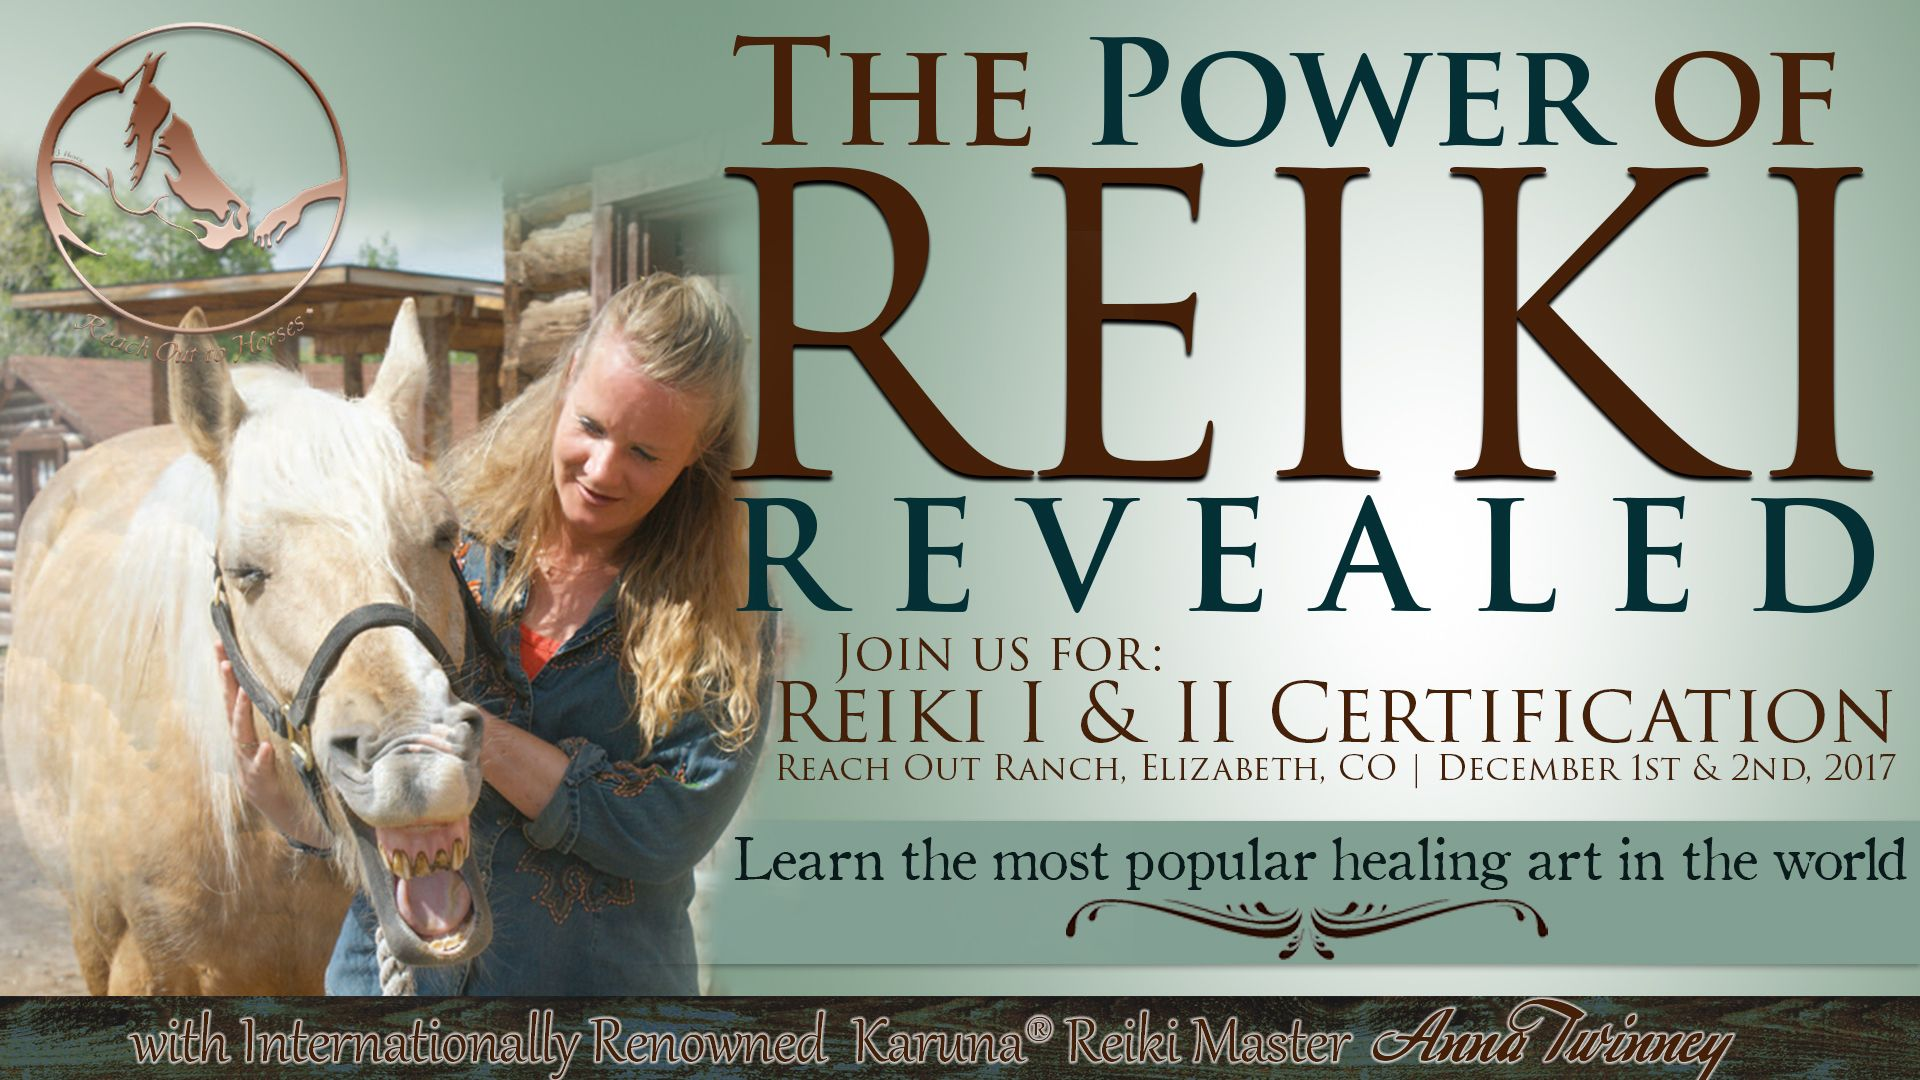 Reiki classes level I and II in Franktown, CO! Visit the